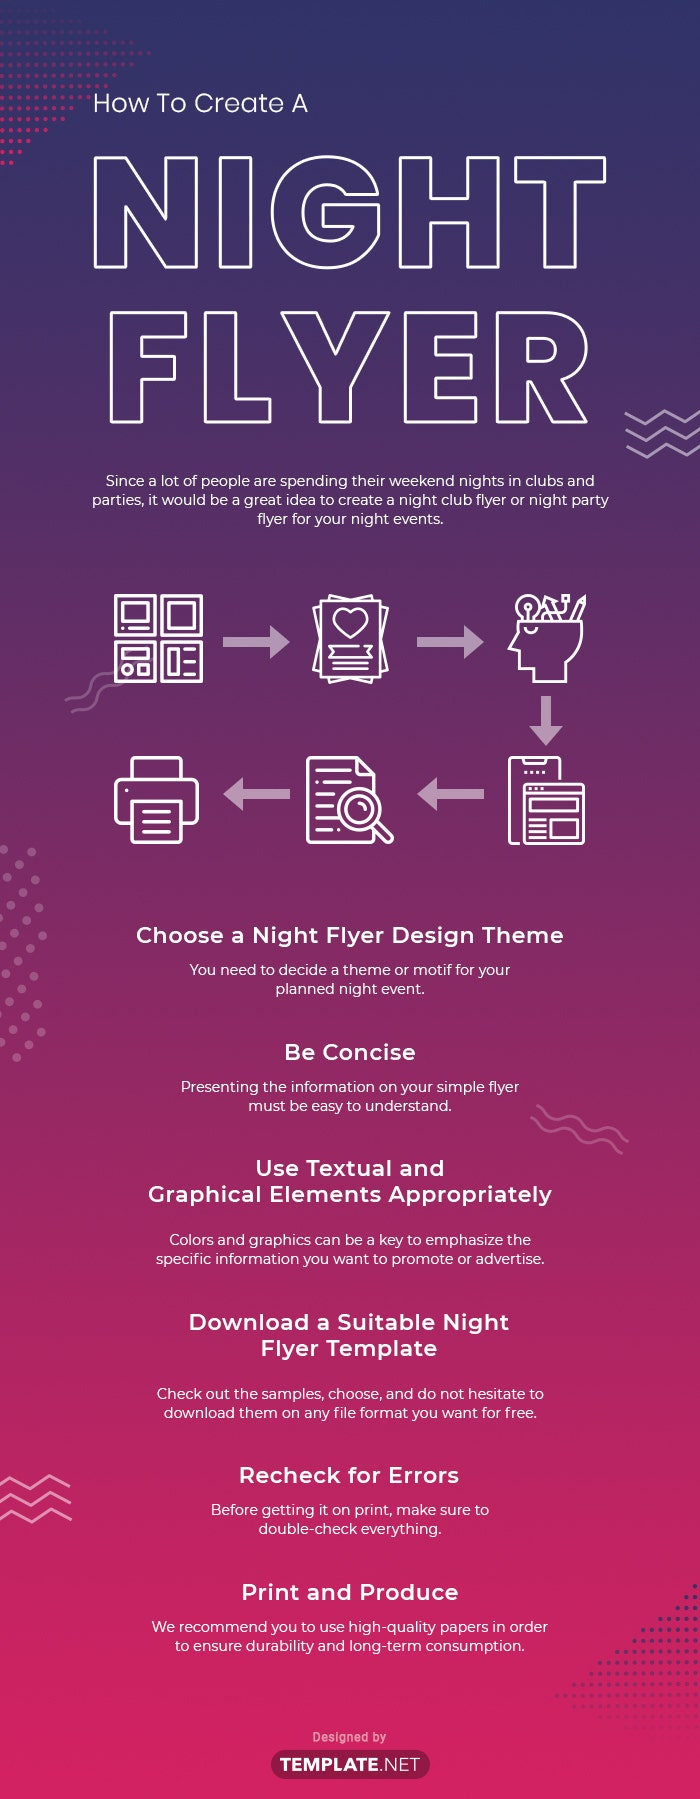 how to create a night flyer